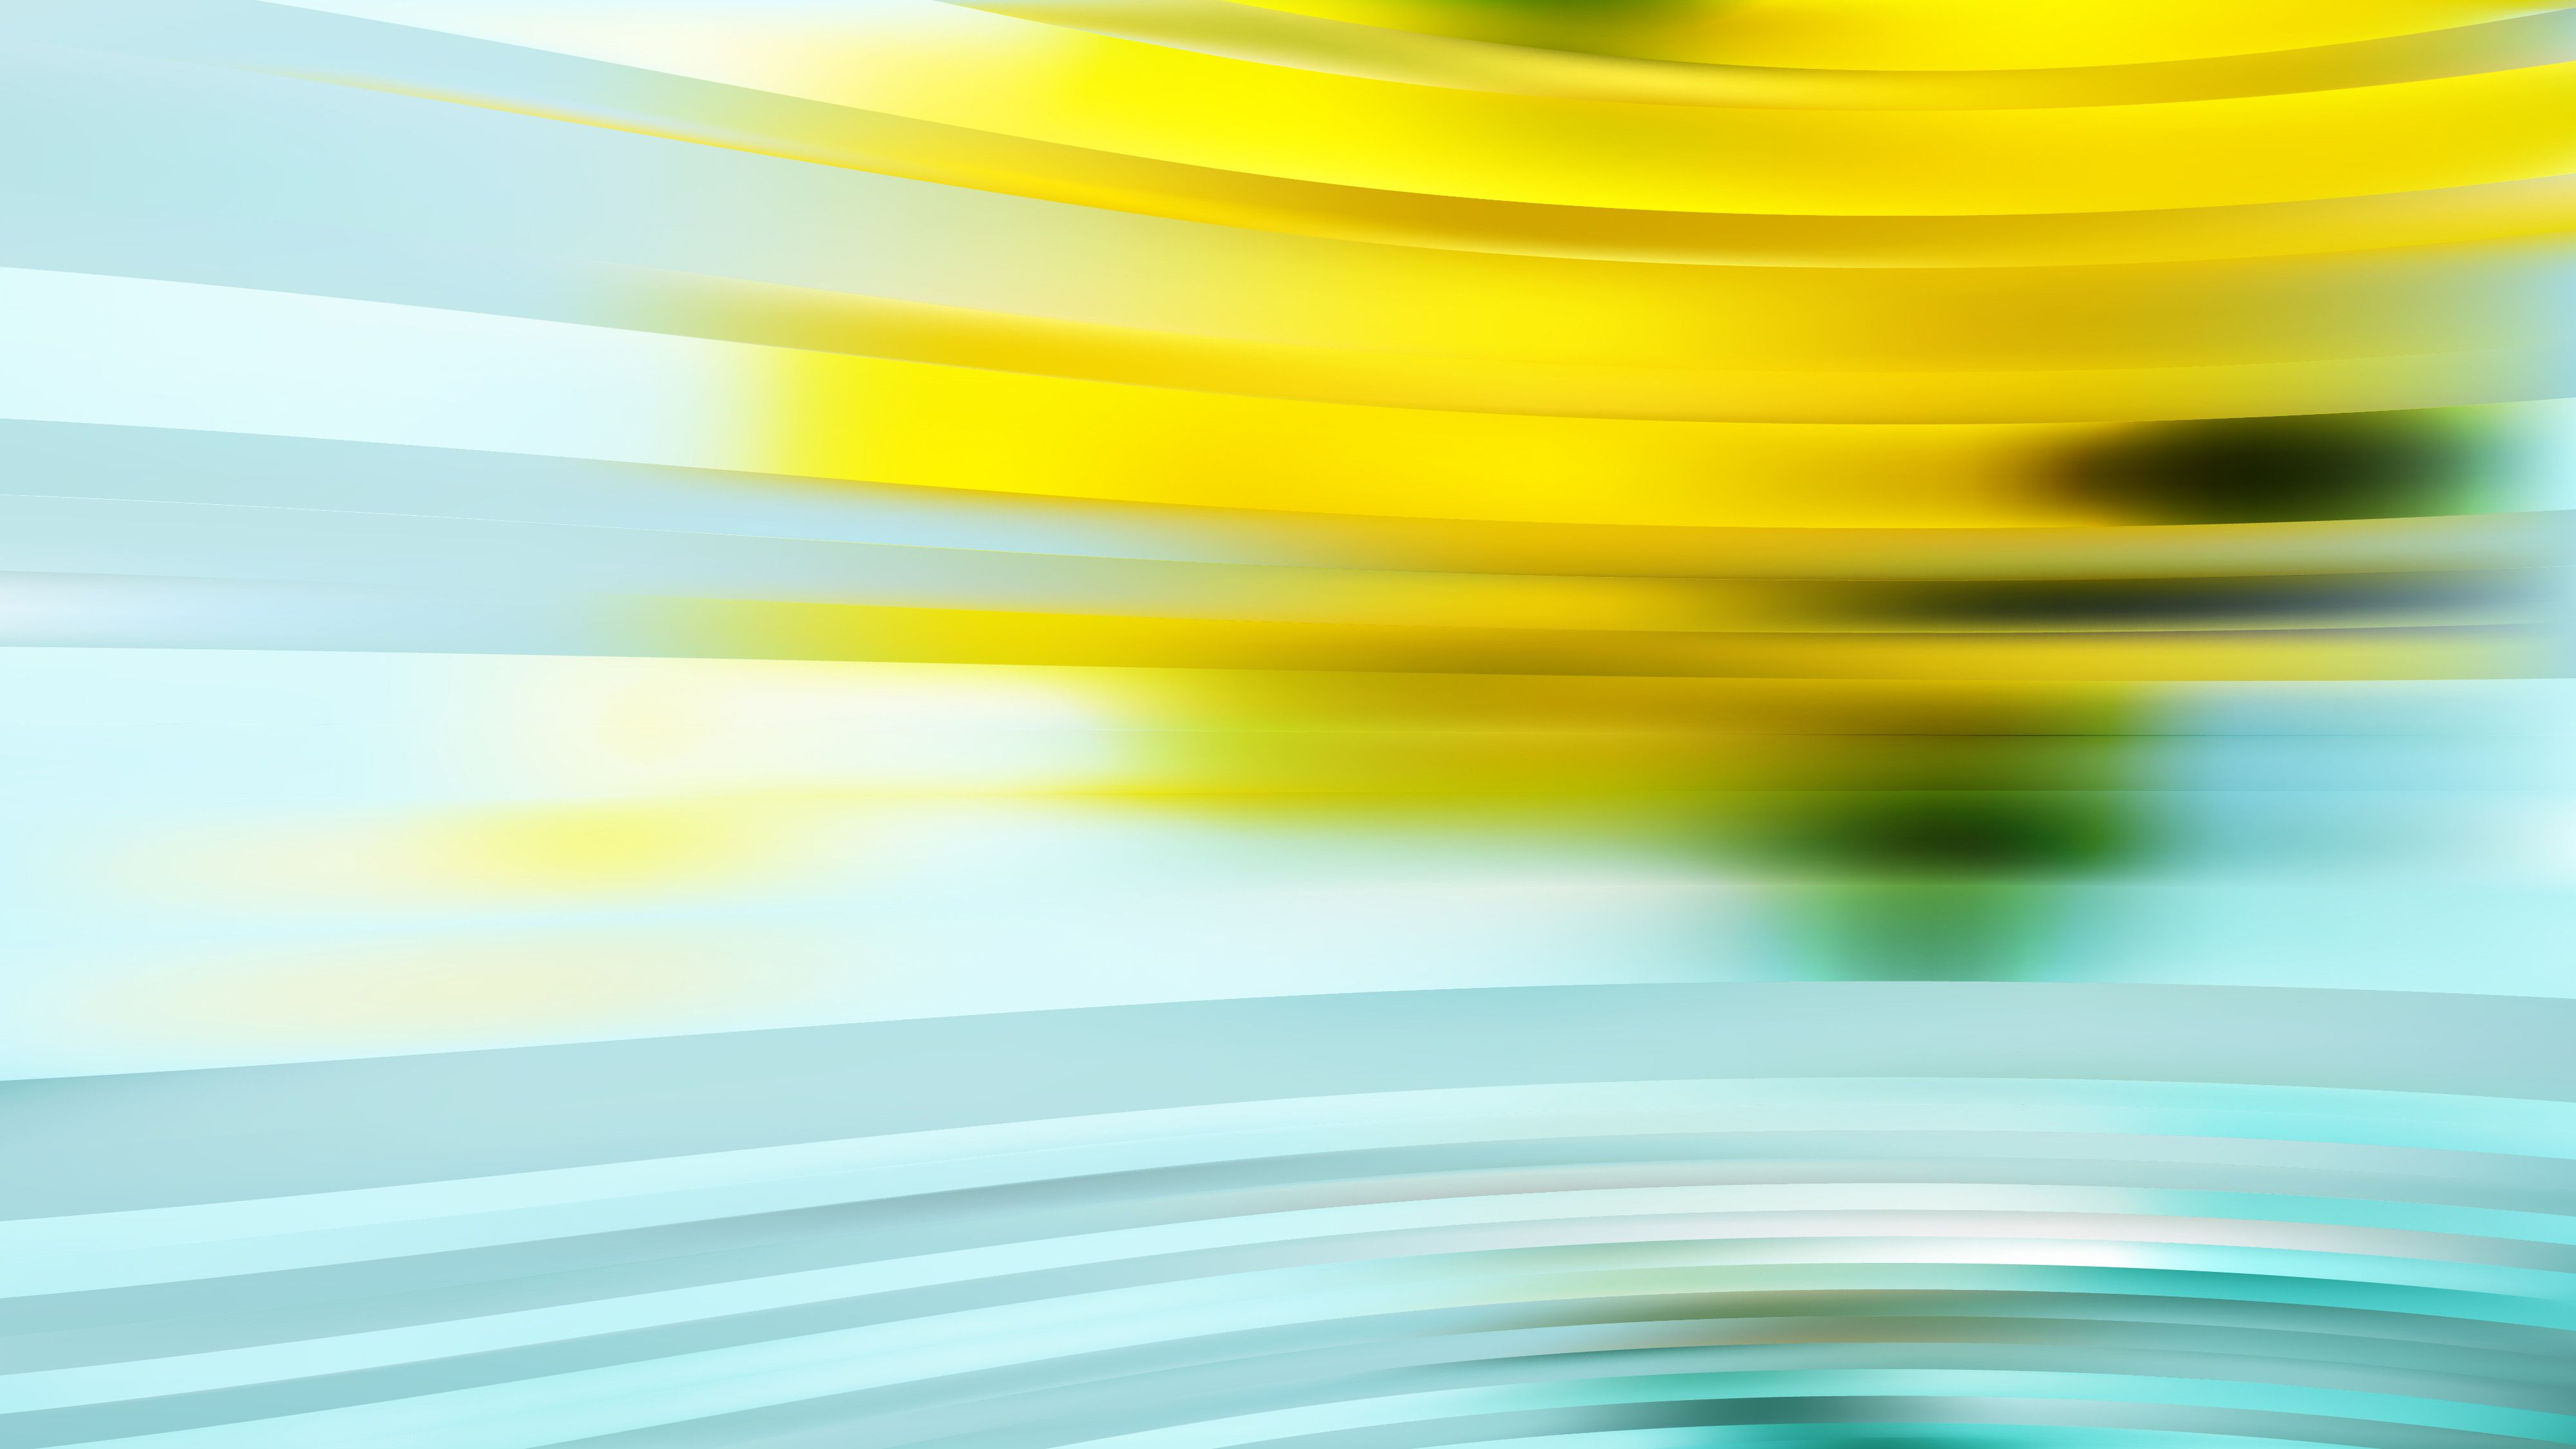 Blue Yellow Green Free Background Image Design Graphicdesign Creative Wallpaper Bac Free Background Images Background Images Flower Background Images